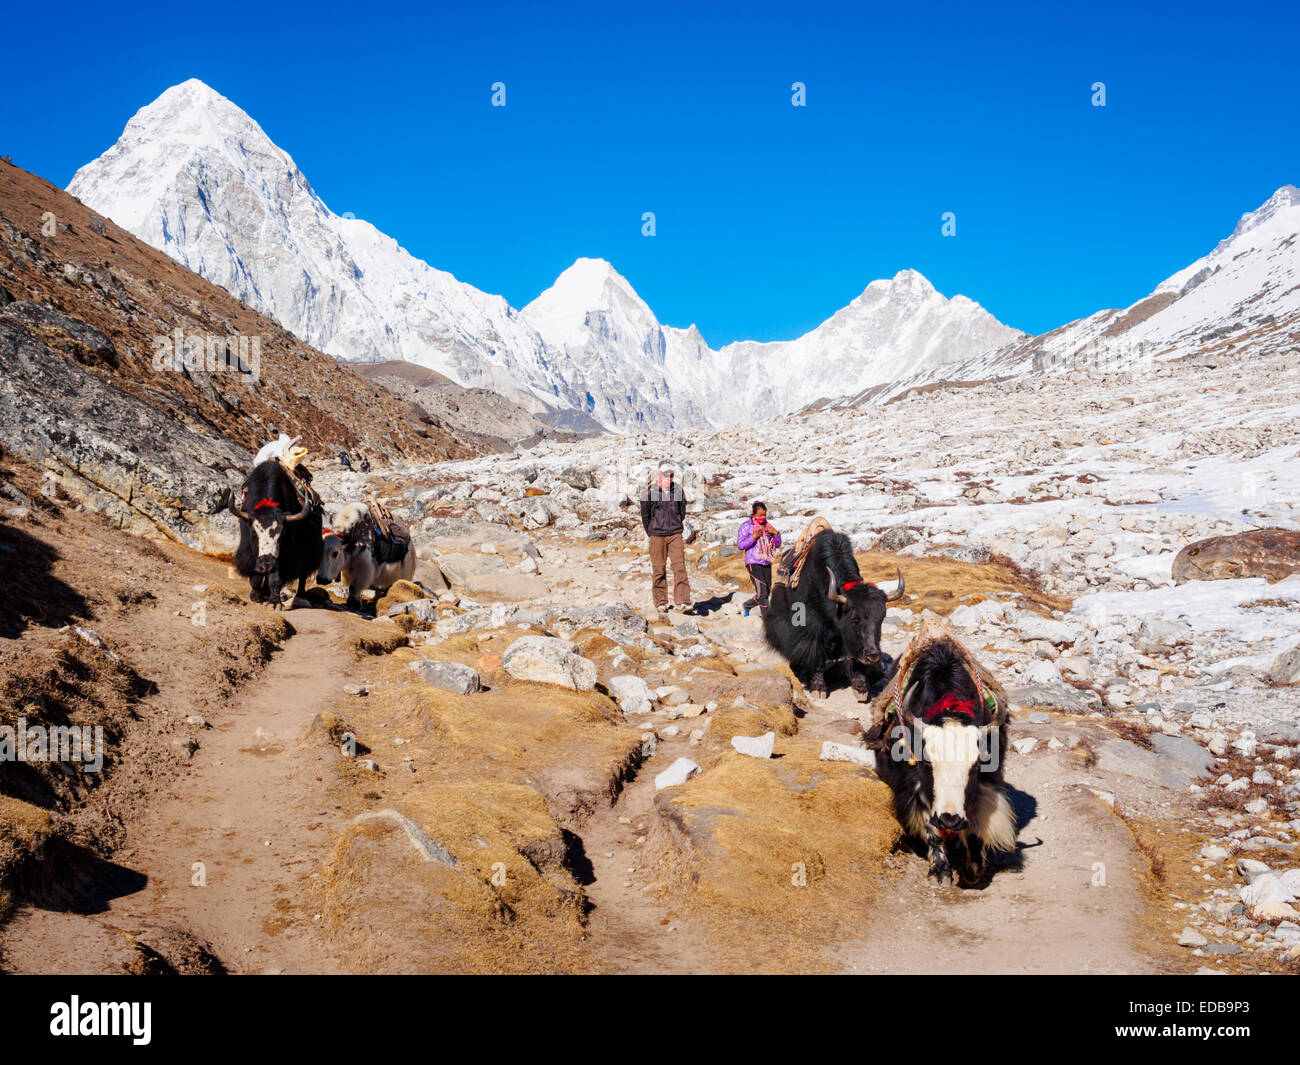 Yaks beside the Khumbu glacier near Everest Base Camp in Nepal - Stock Image